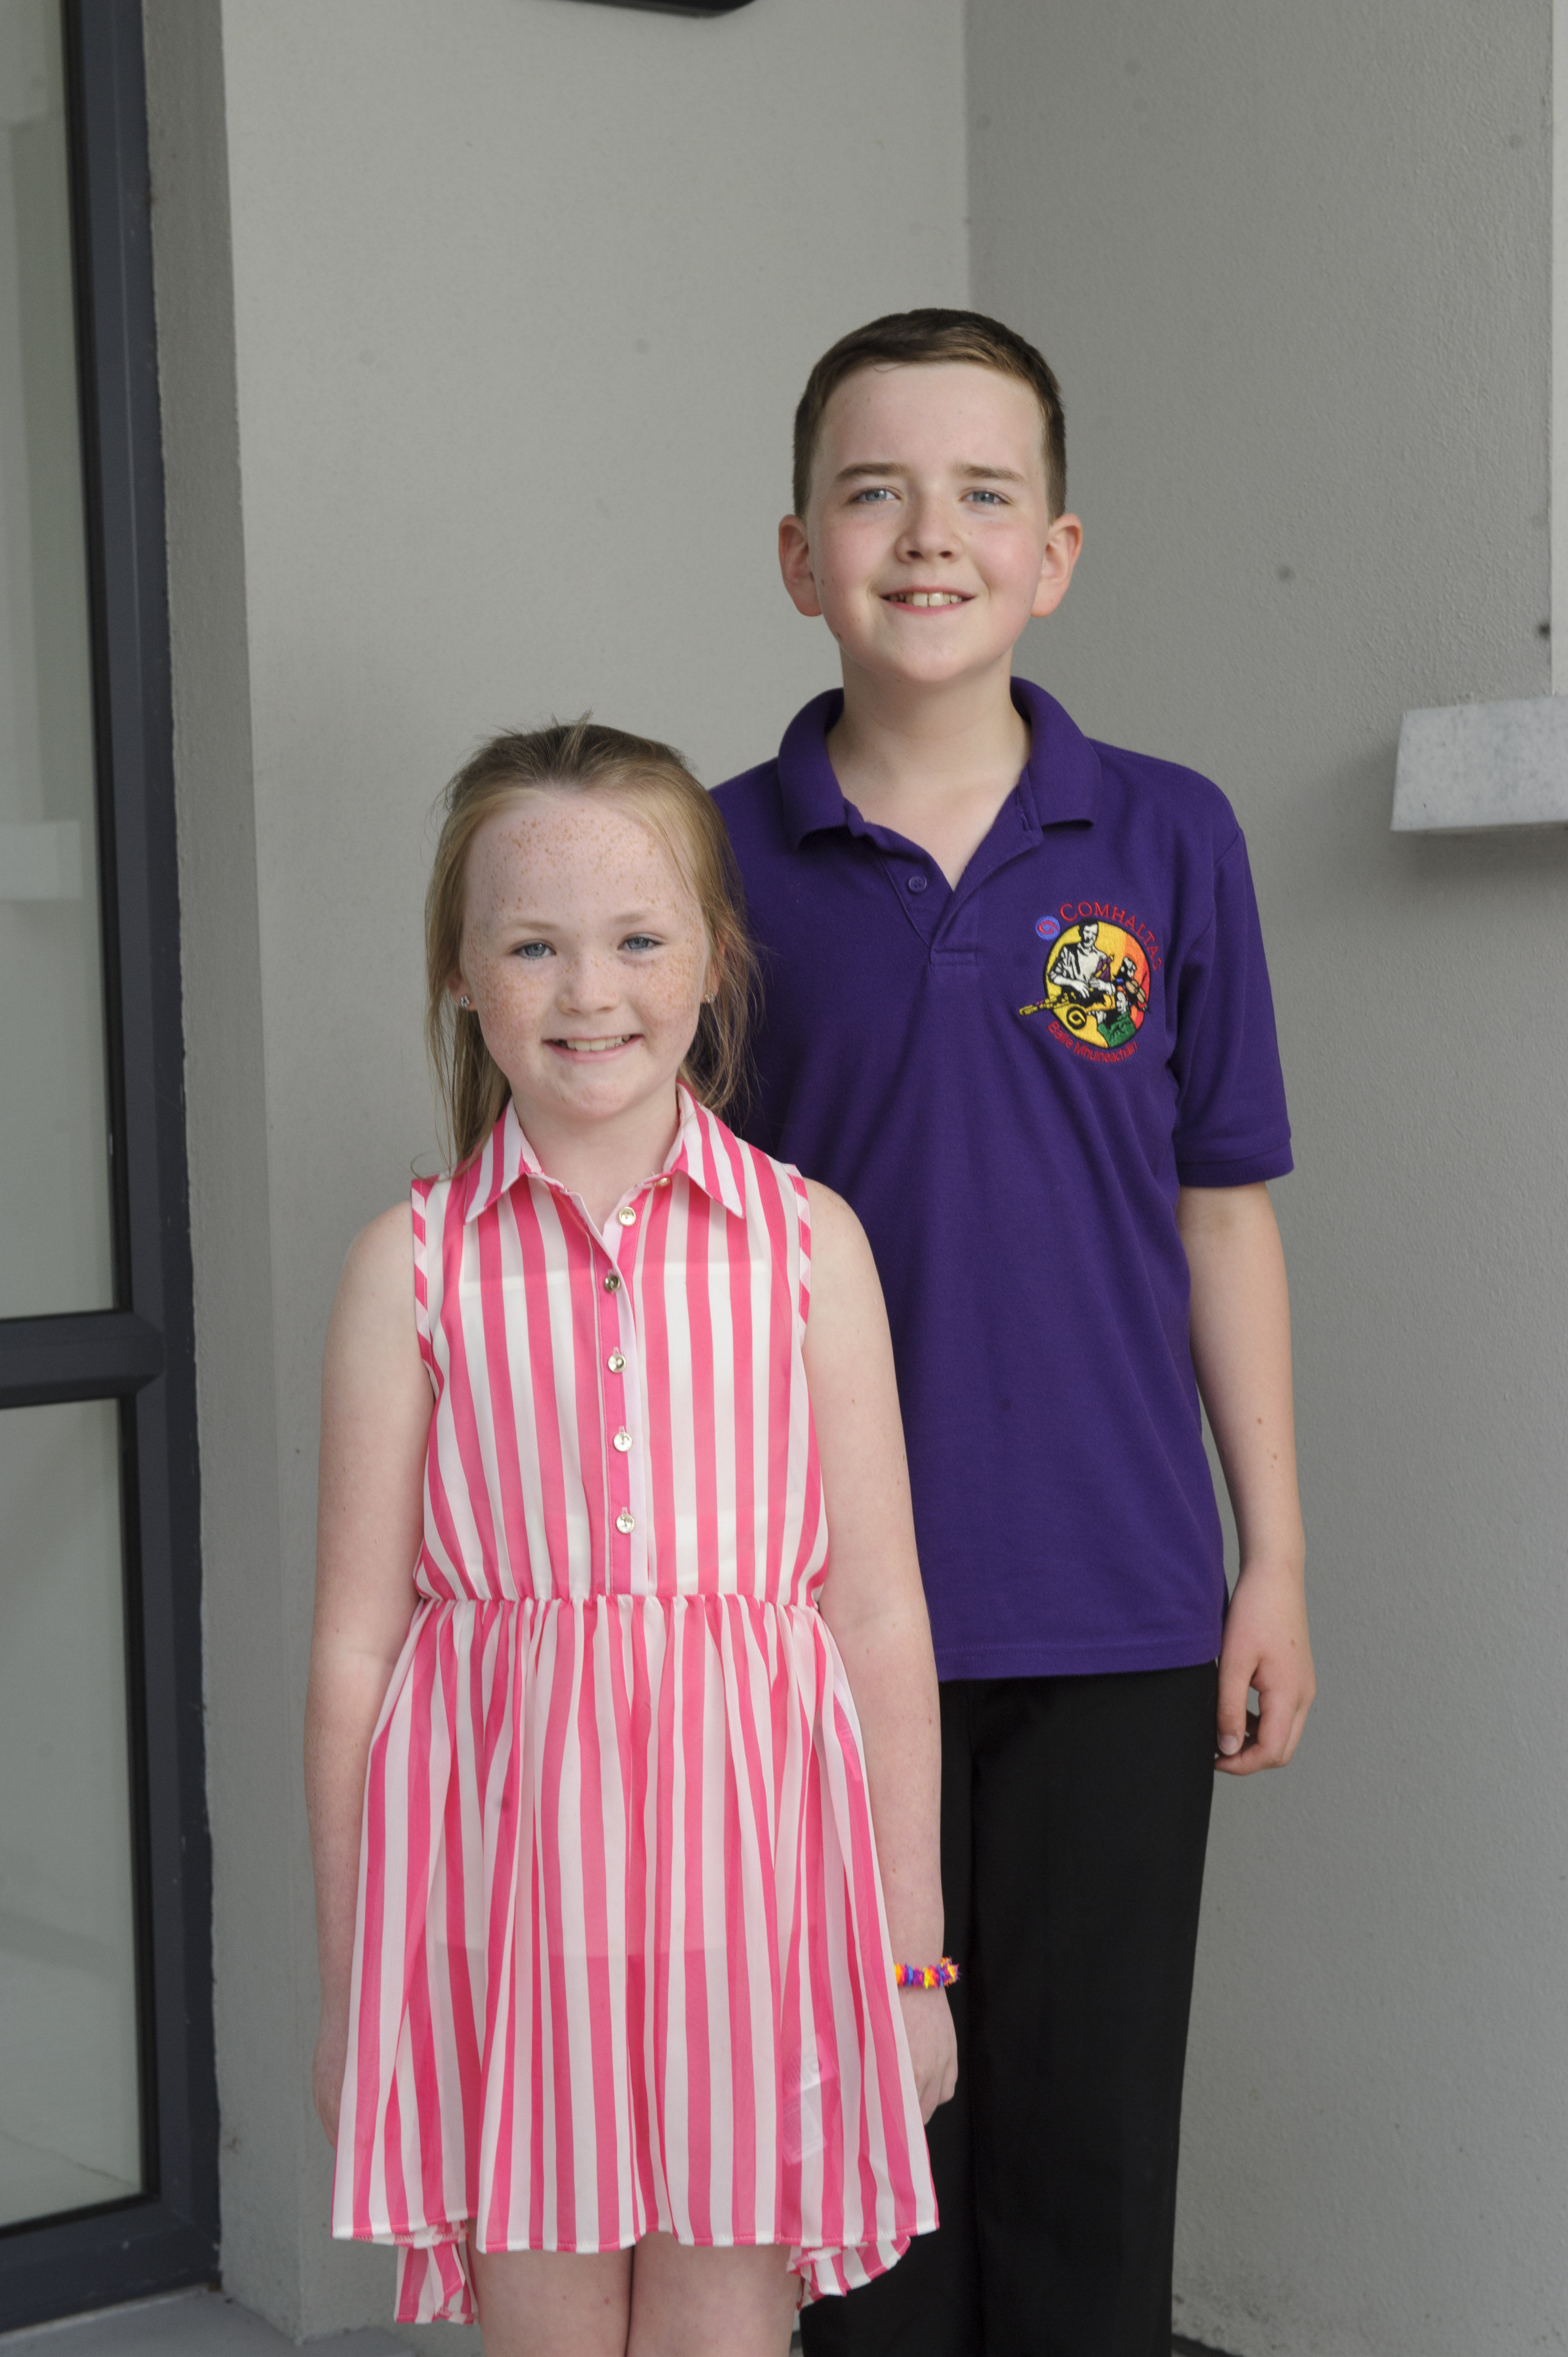 Lucy O'Brien, U-9 Comhrá Gaelige, and Eoin McCleary, U-13 Comhrá Gaelige, from Baile Mhuineacháin CCE, who are both through to Ulster. ©Rory Geary/The Northern Standard